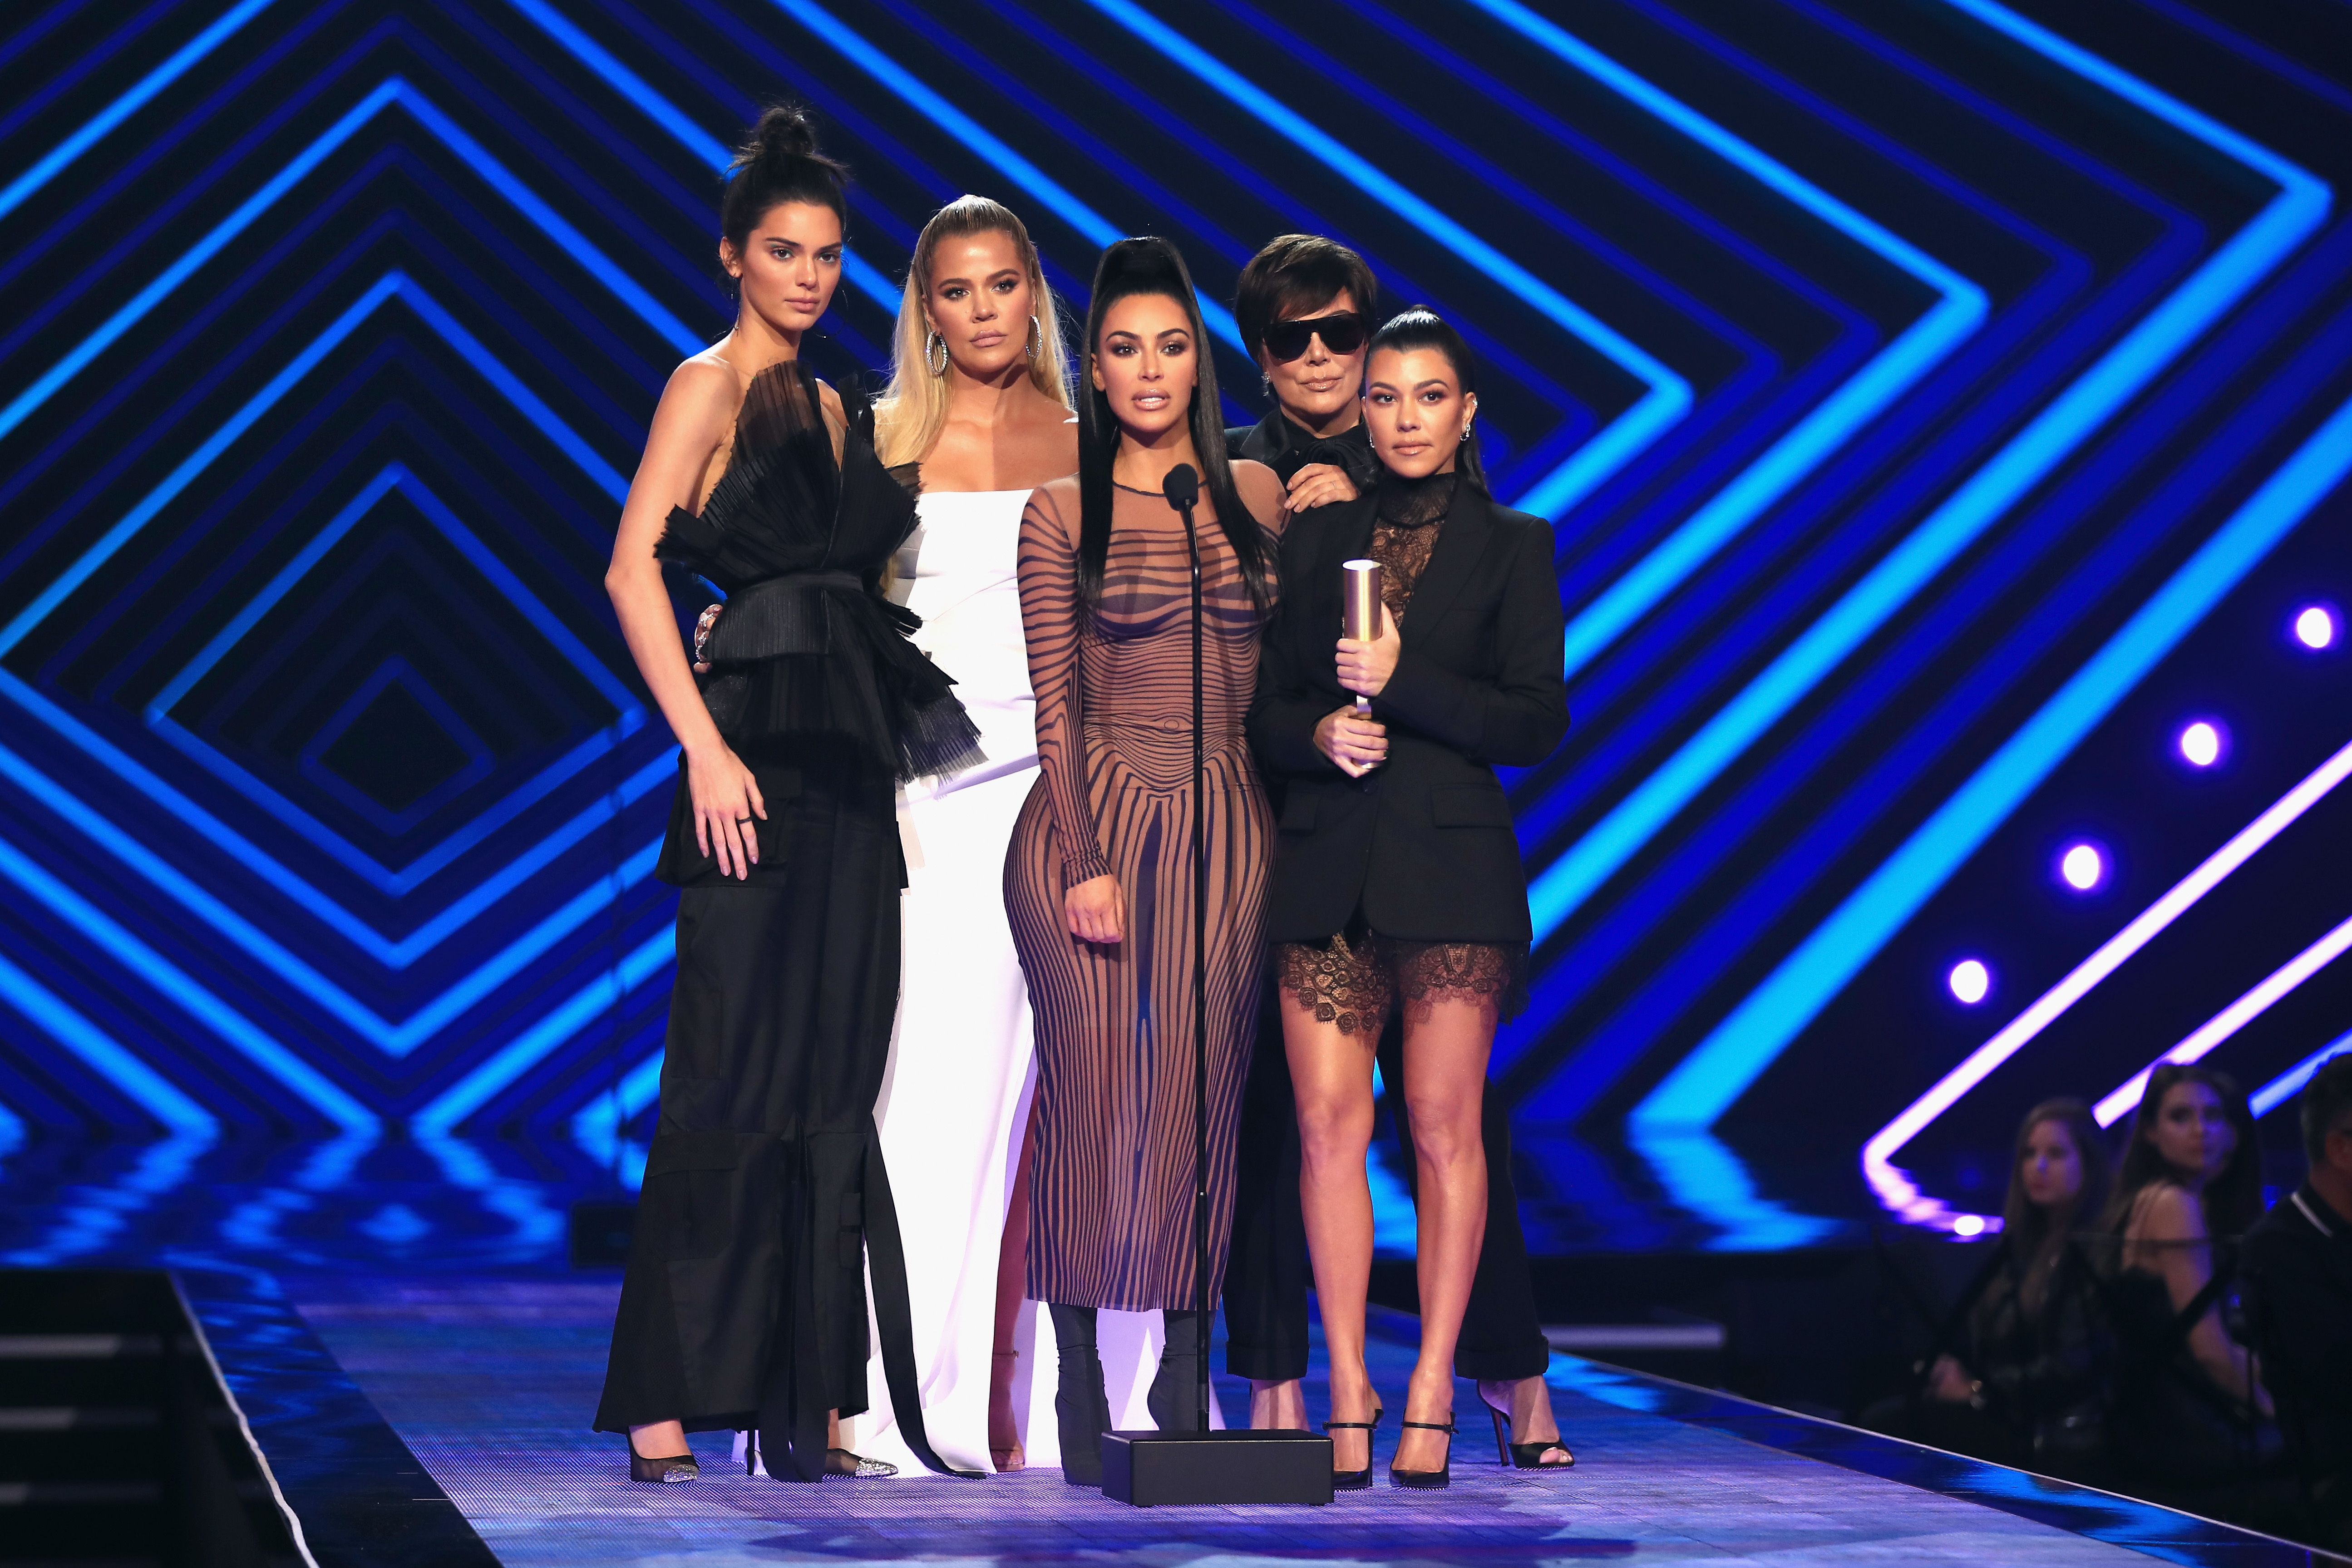 Kendall Jenner, Khloe Kardashian, Kim Kardashian West, Kris Jenner, and Kourtney Kardashian accept the The Reality Show of 2018 award for 'Keeping Up with the Kardashians' during the 2018 E! People's Choice Awardsin Los Angeles on Nov. 11, 2018.